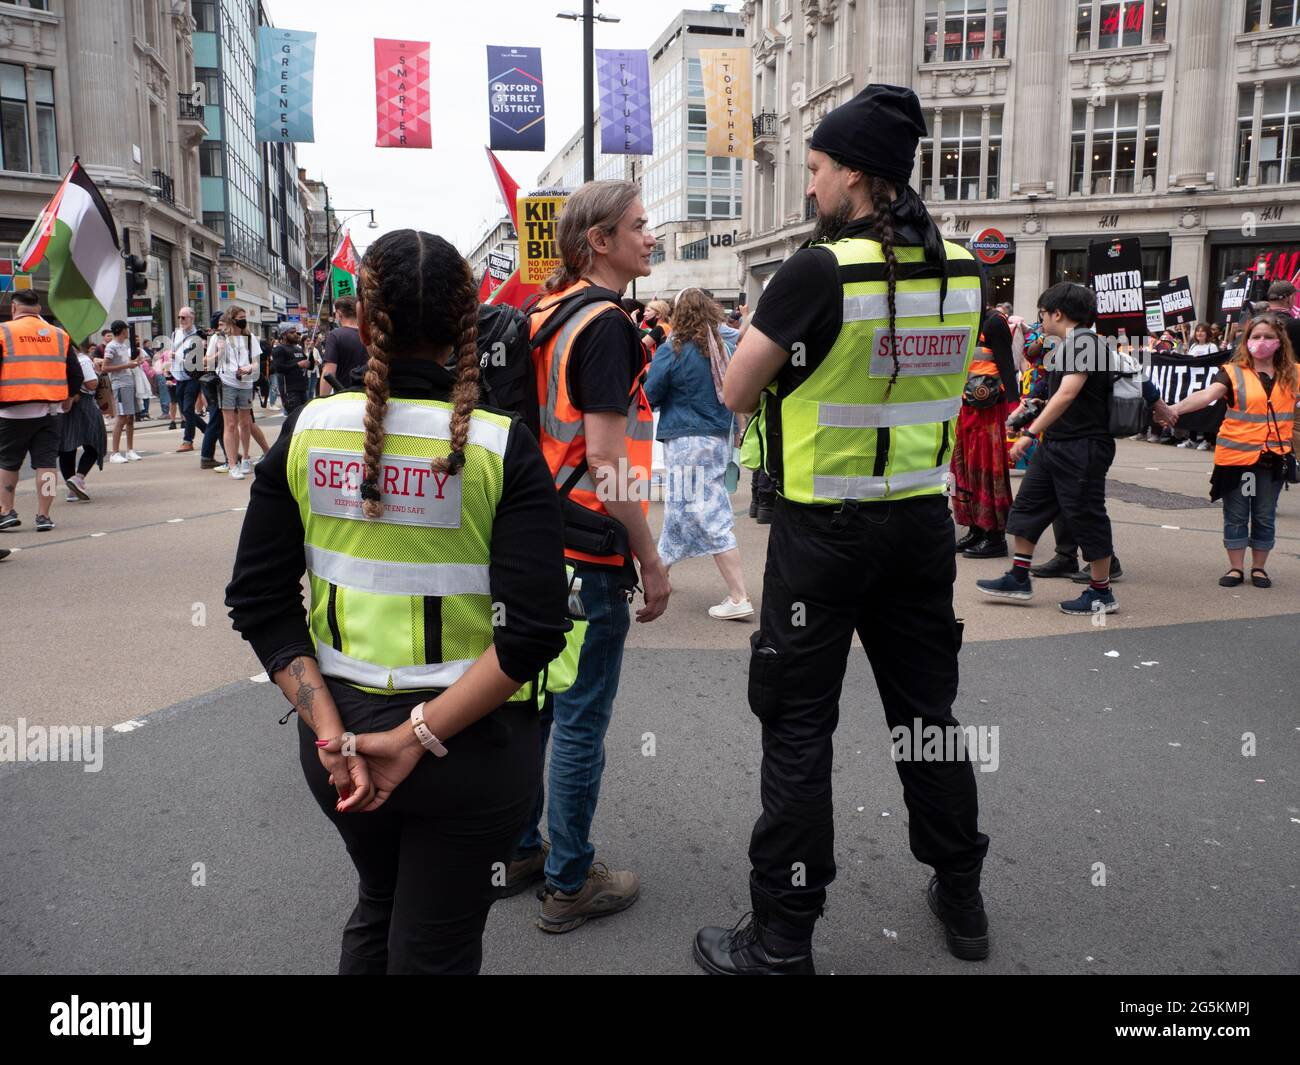 Private Security Company London High Resolution Stock Photography and  Images - Alamy